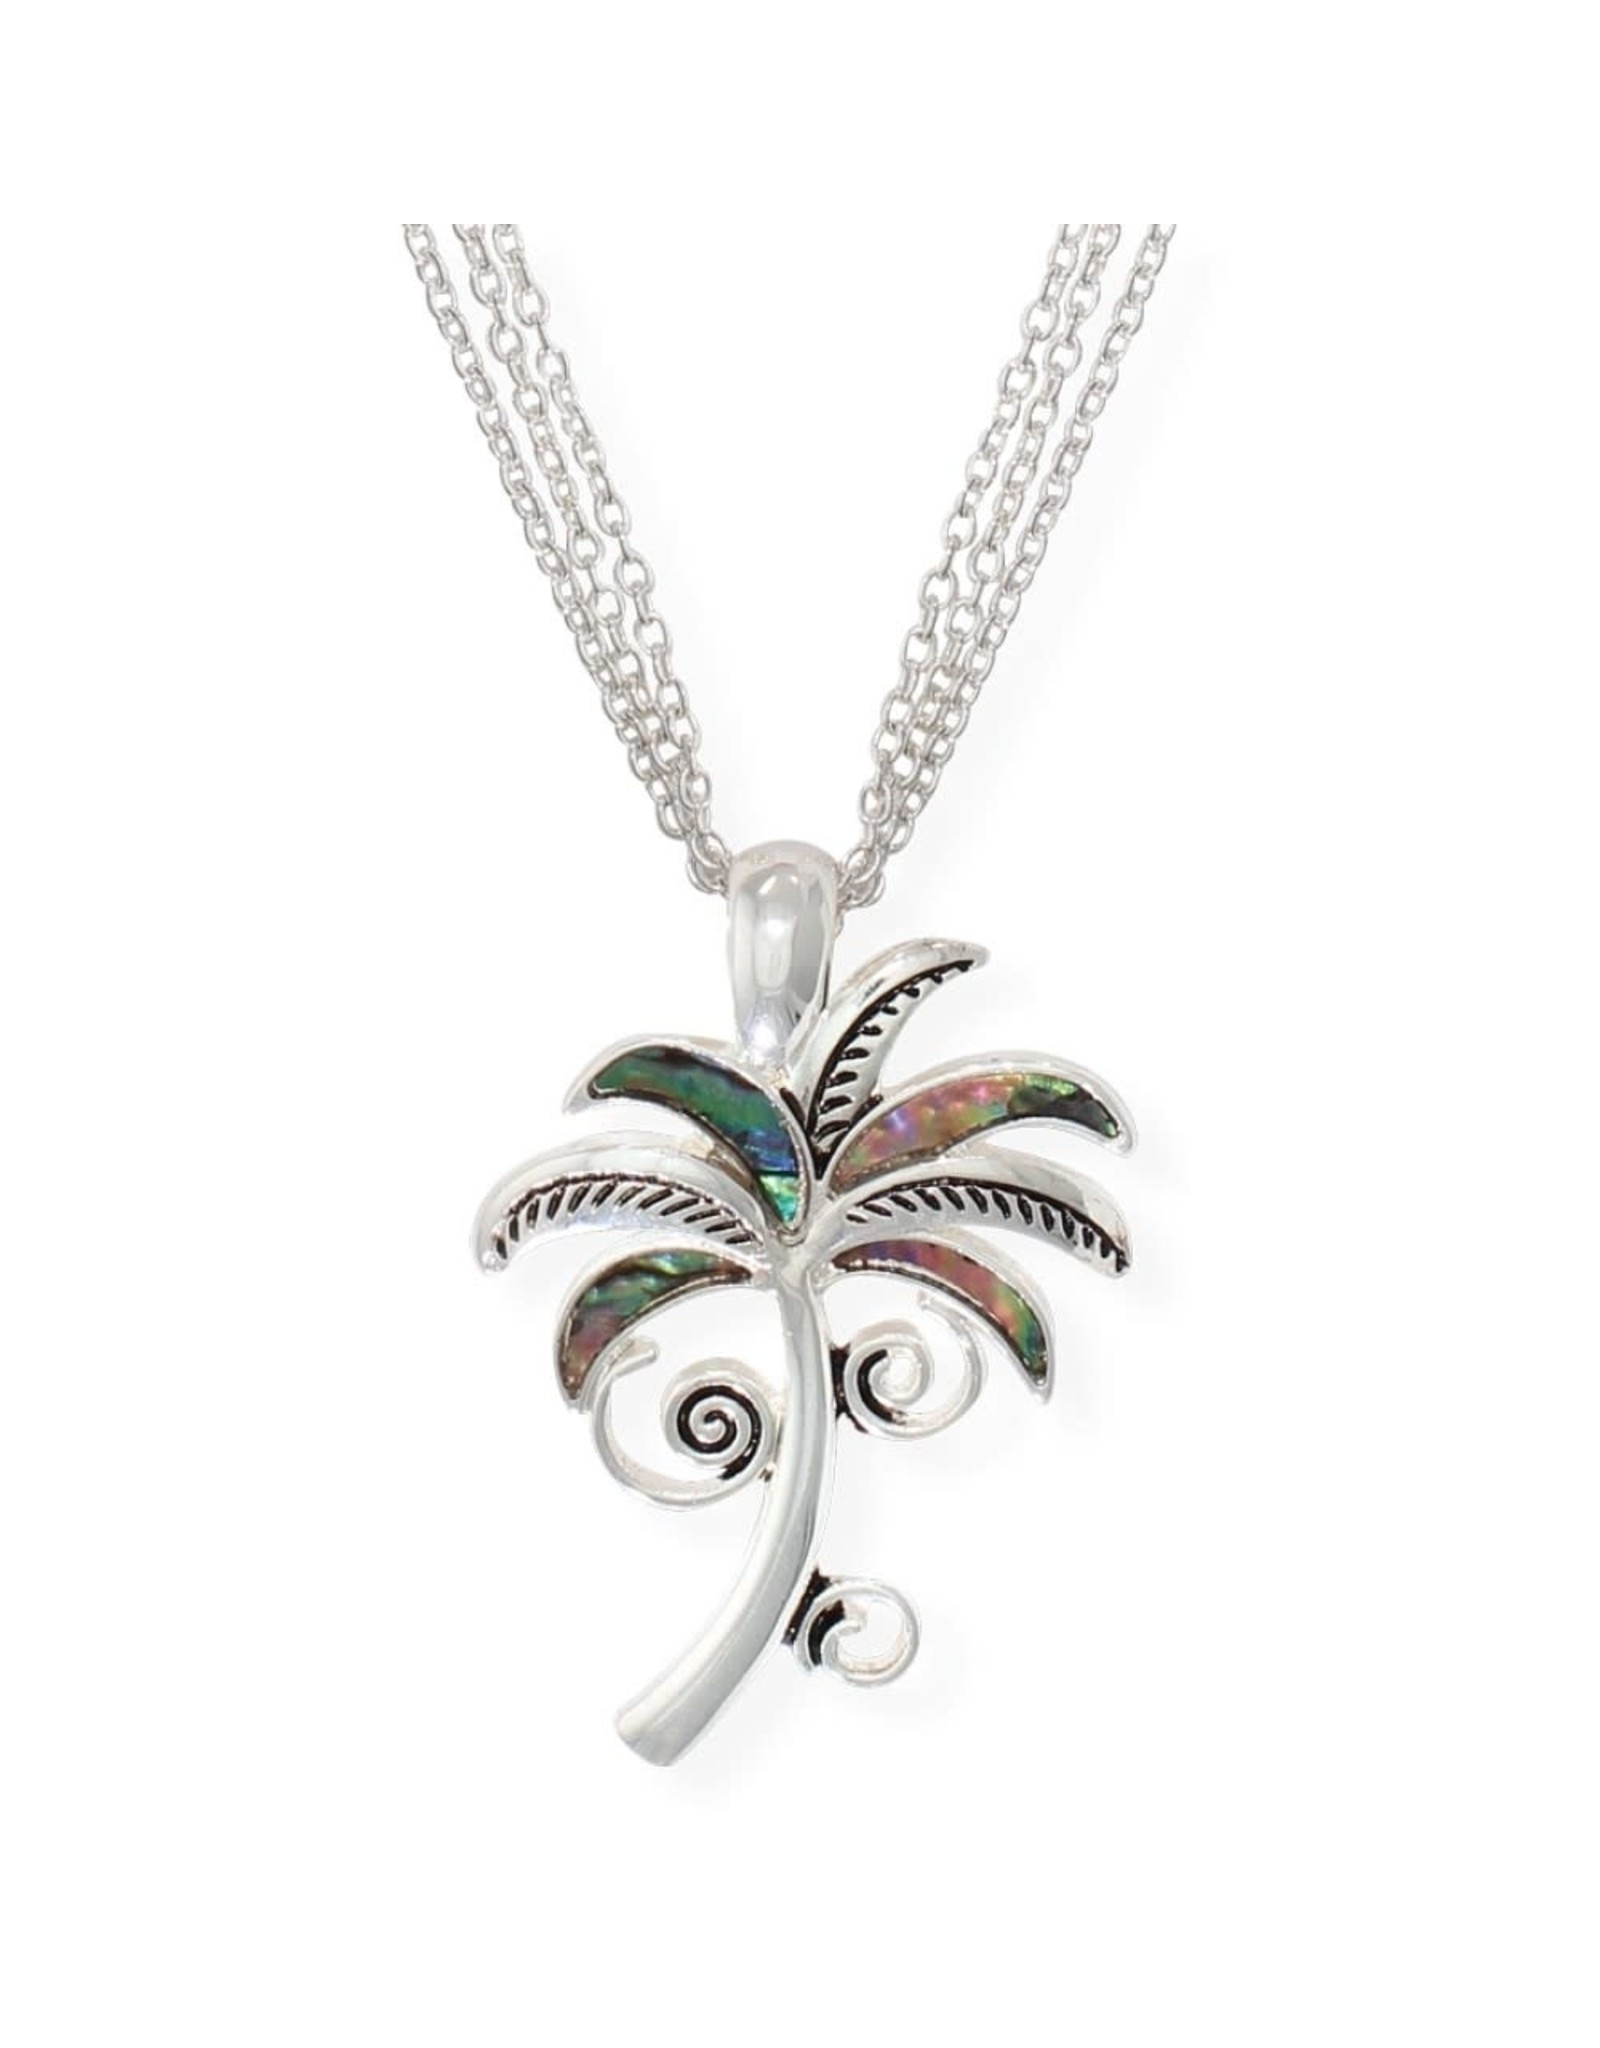 Periwinkle by Barlow 17 Inch Palm Tree Abalone Inlay Necklace